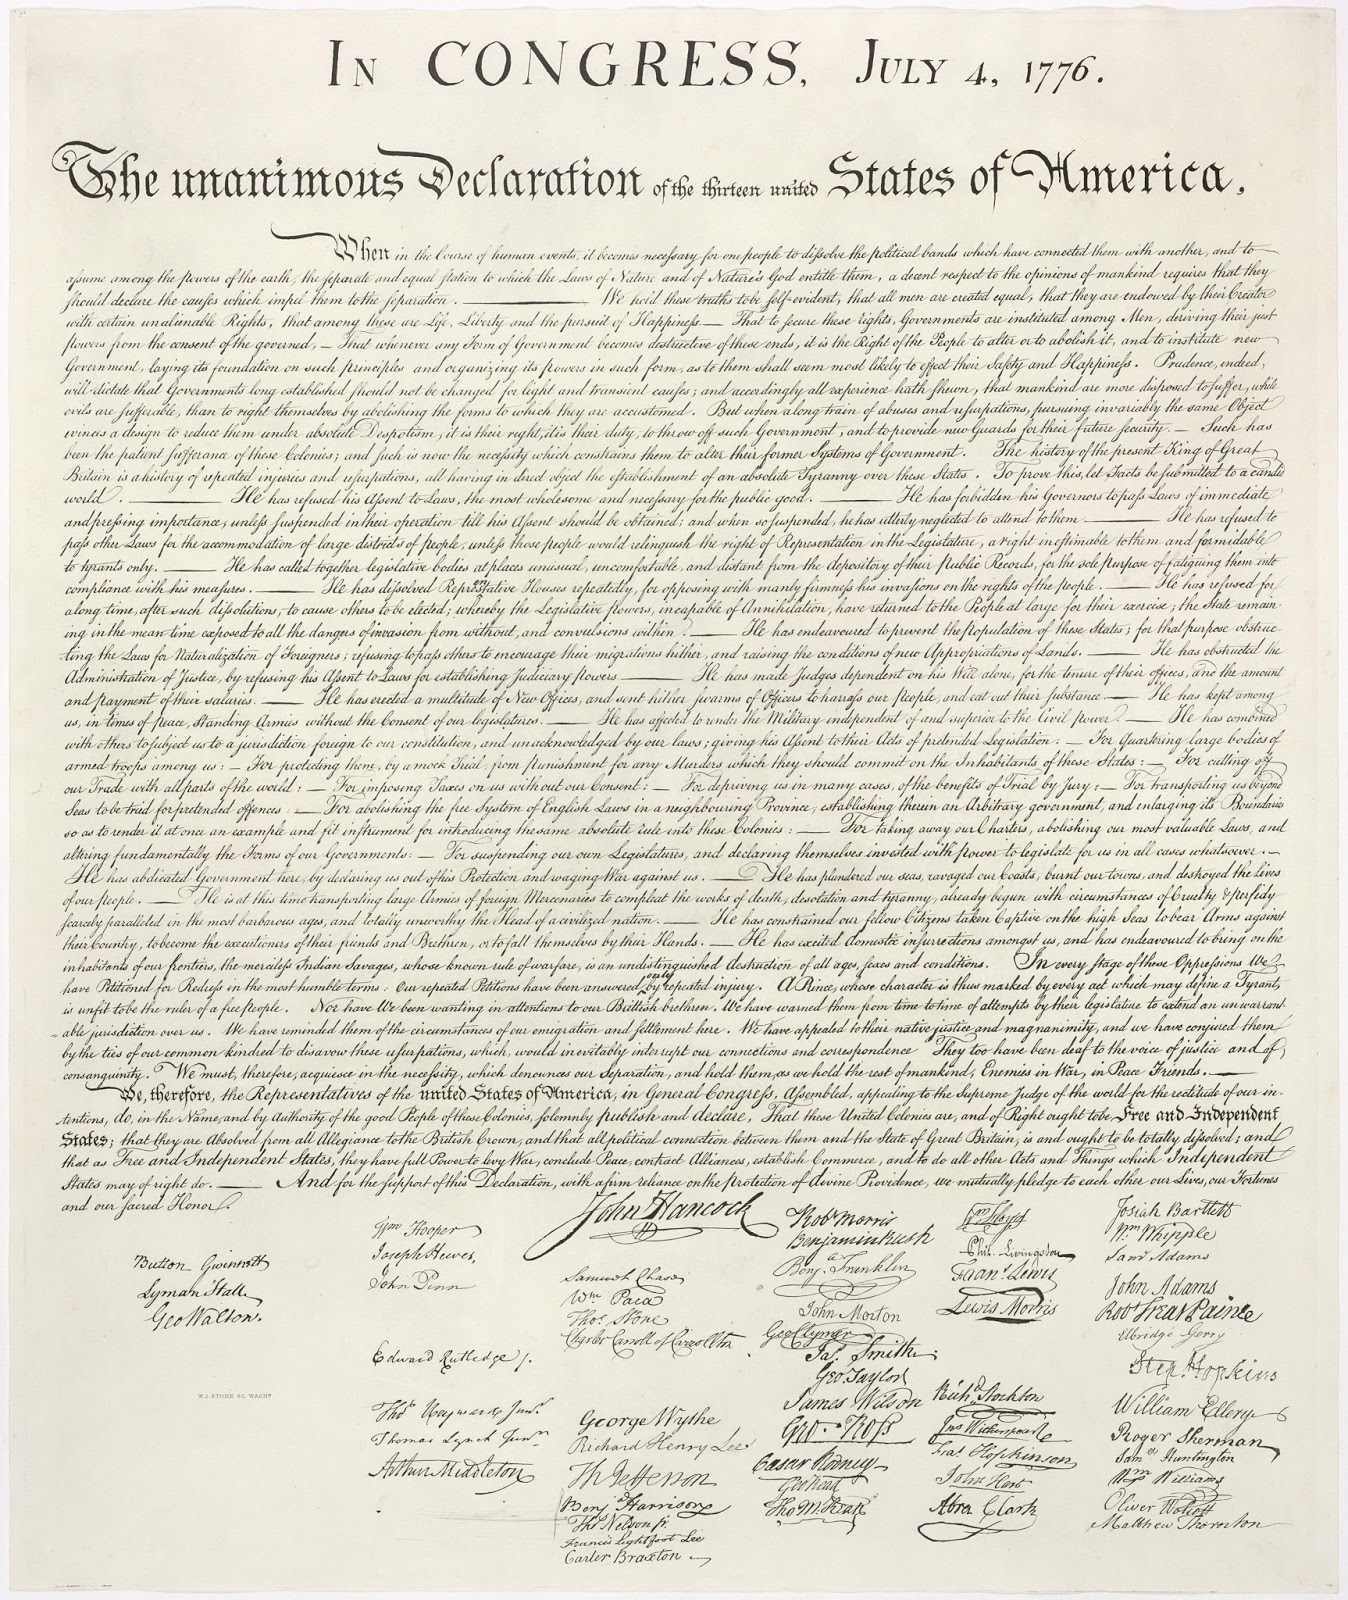 abolitionism united states declaration of independence Declaration of independence (1776)  in colonial america, slaves exercised  constant vigilance regarding how to best engage with  did the hope of these  first black abolitionists fail to account for the depth to which slavery.